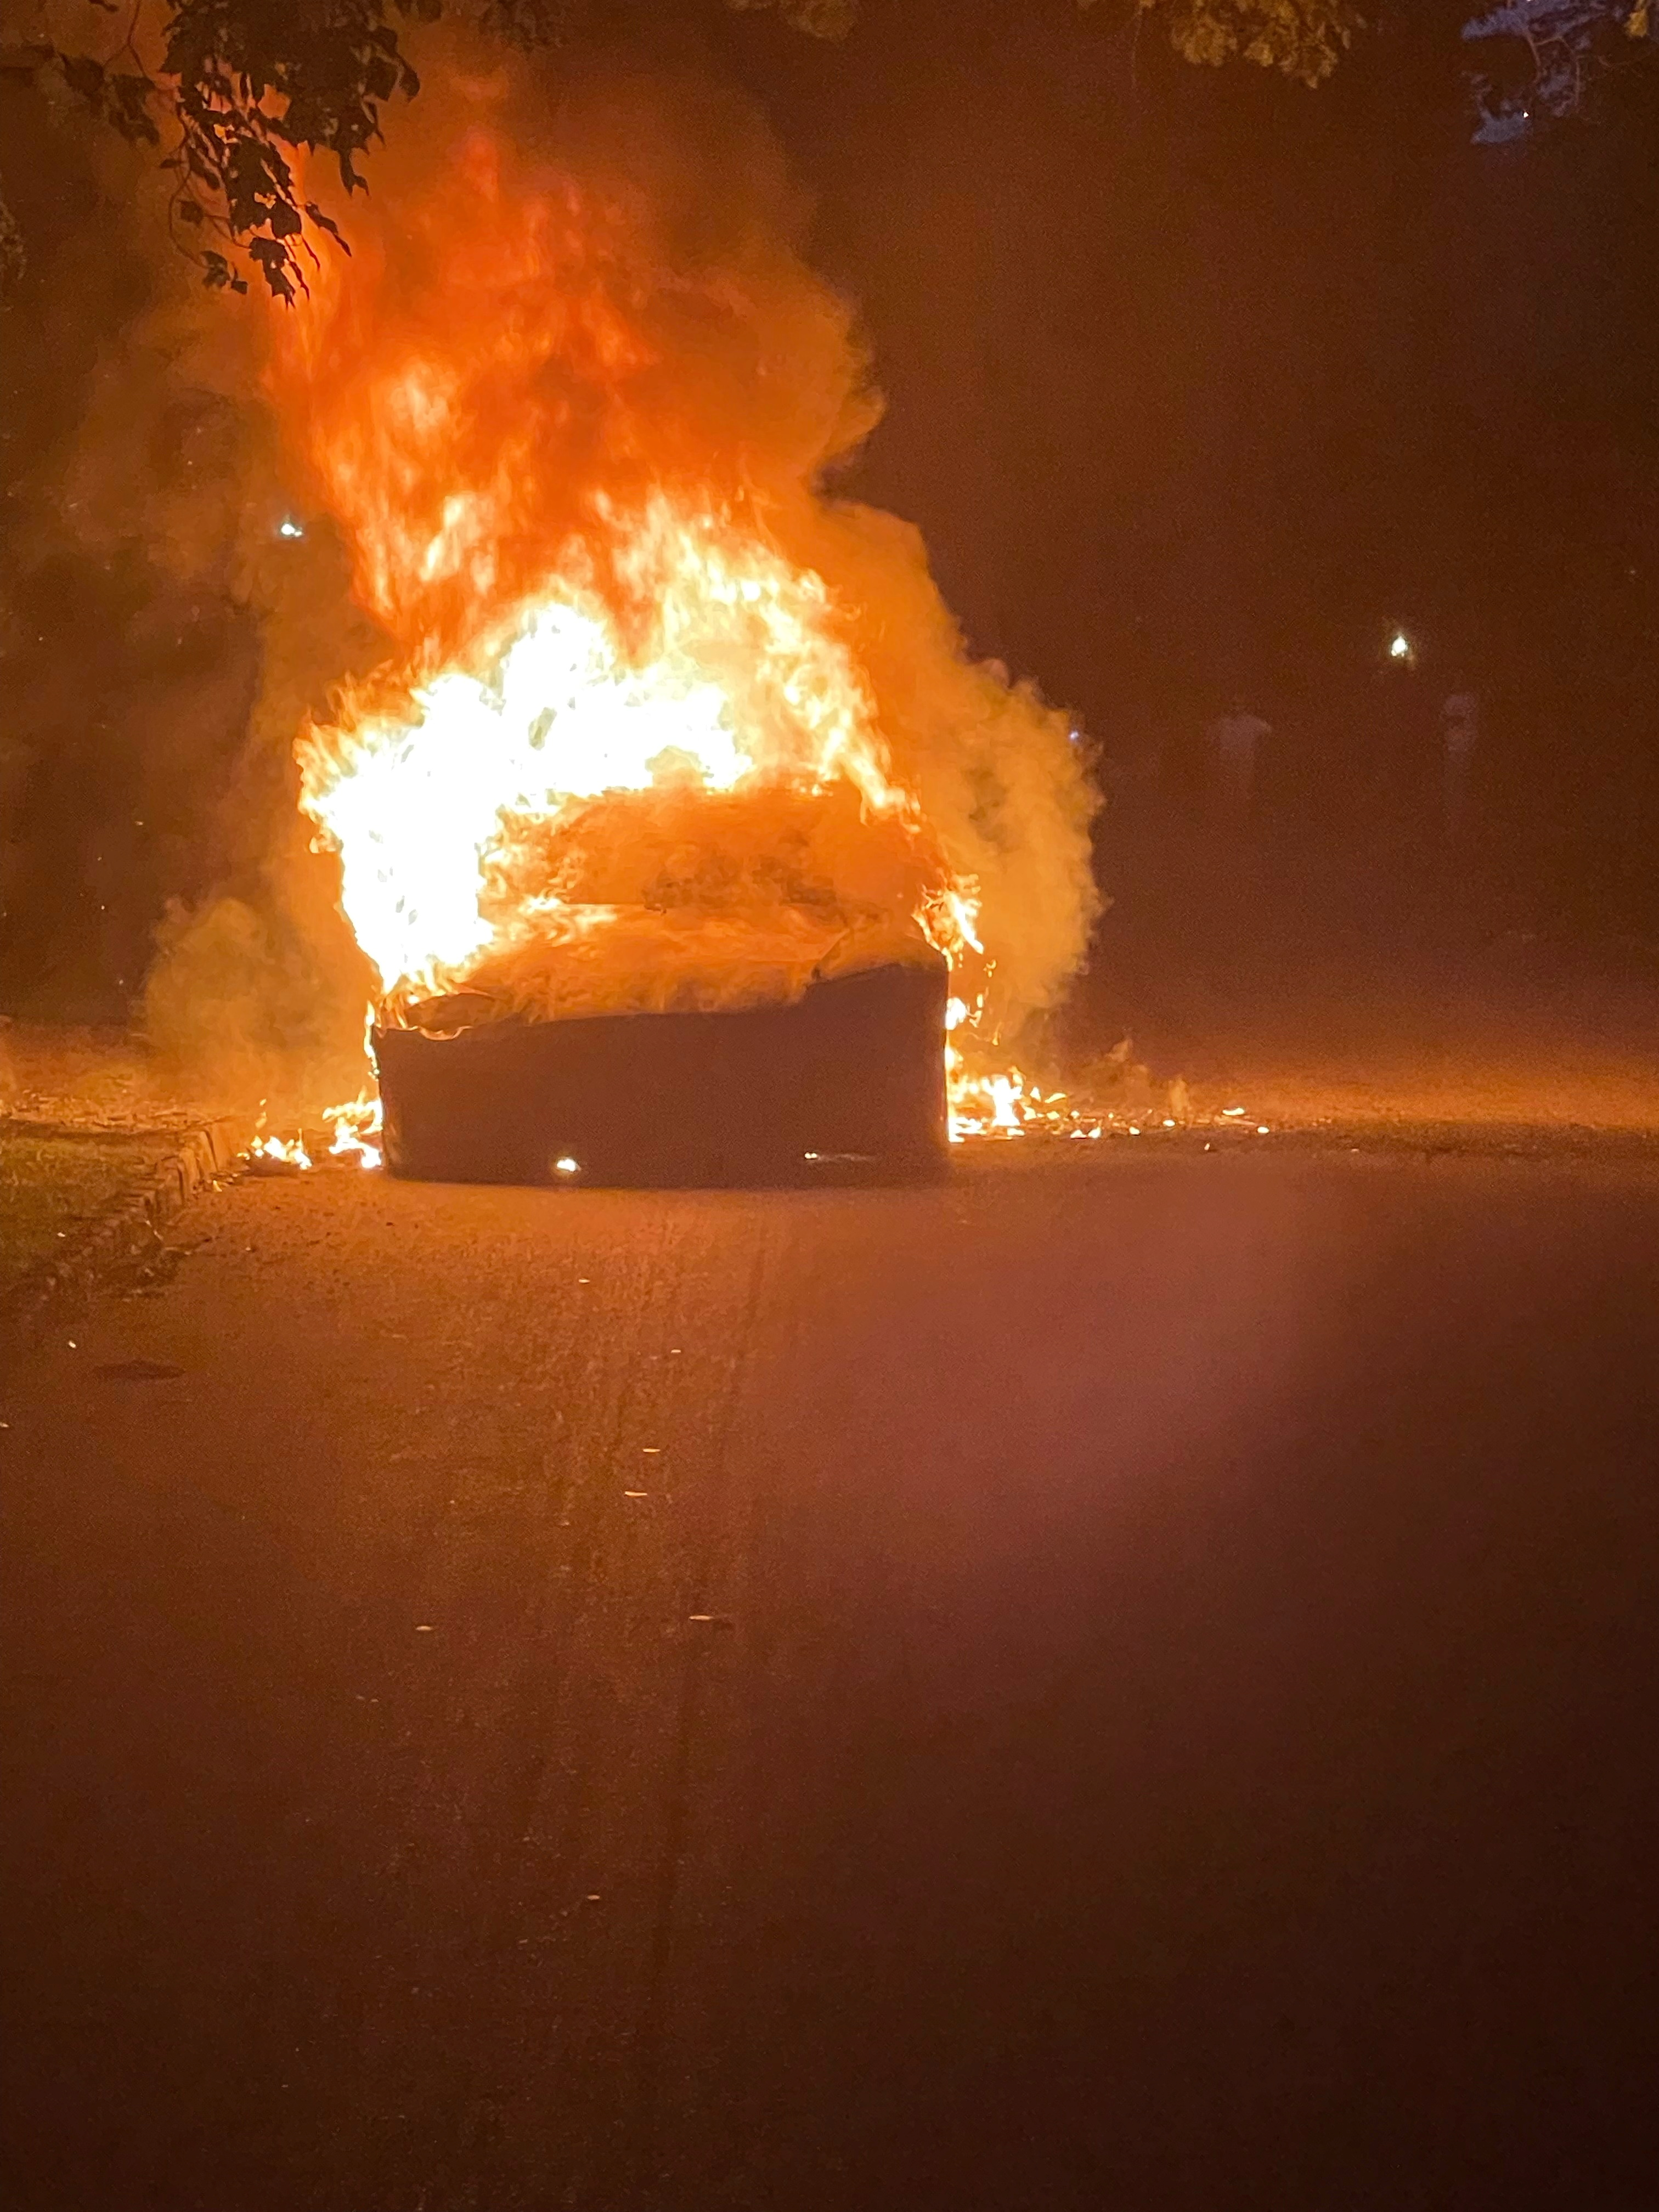 Tesla Inc's new Model S Plaid electric car is seen in flames in Pennsylvania, U.S., in this handout photo provided to Reuters on July 2, 2021. Handout via REUTERS